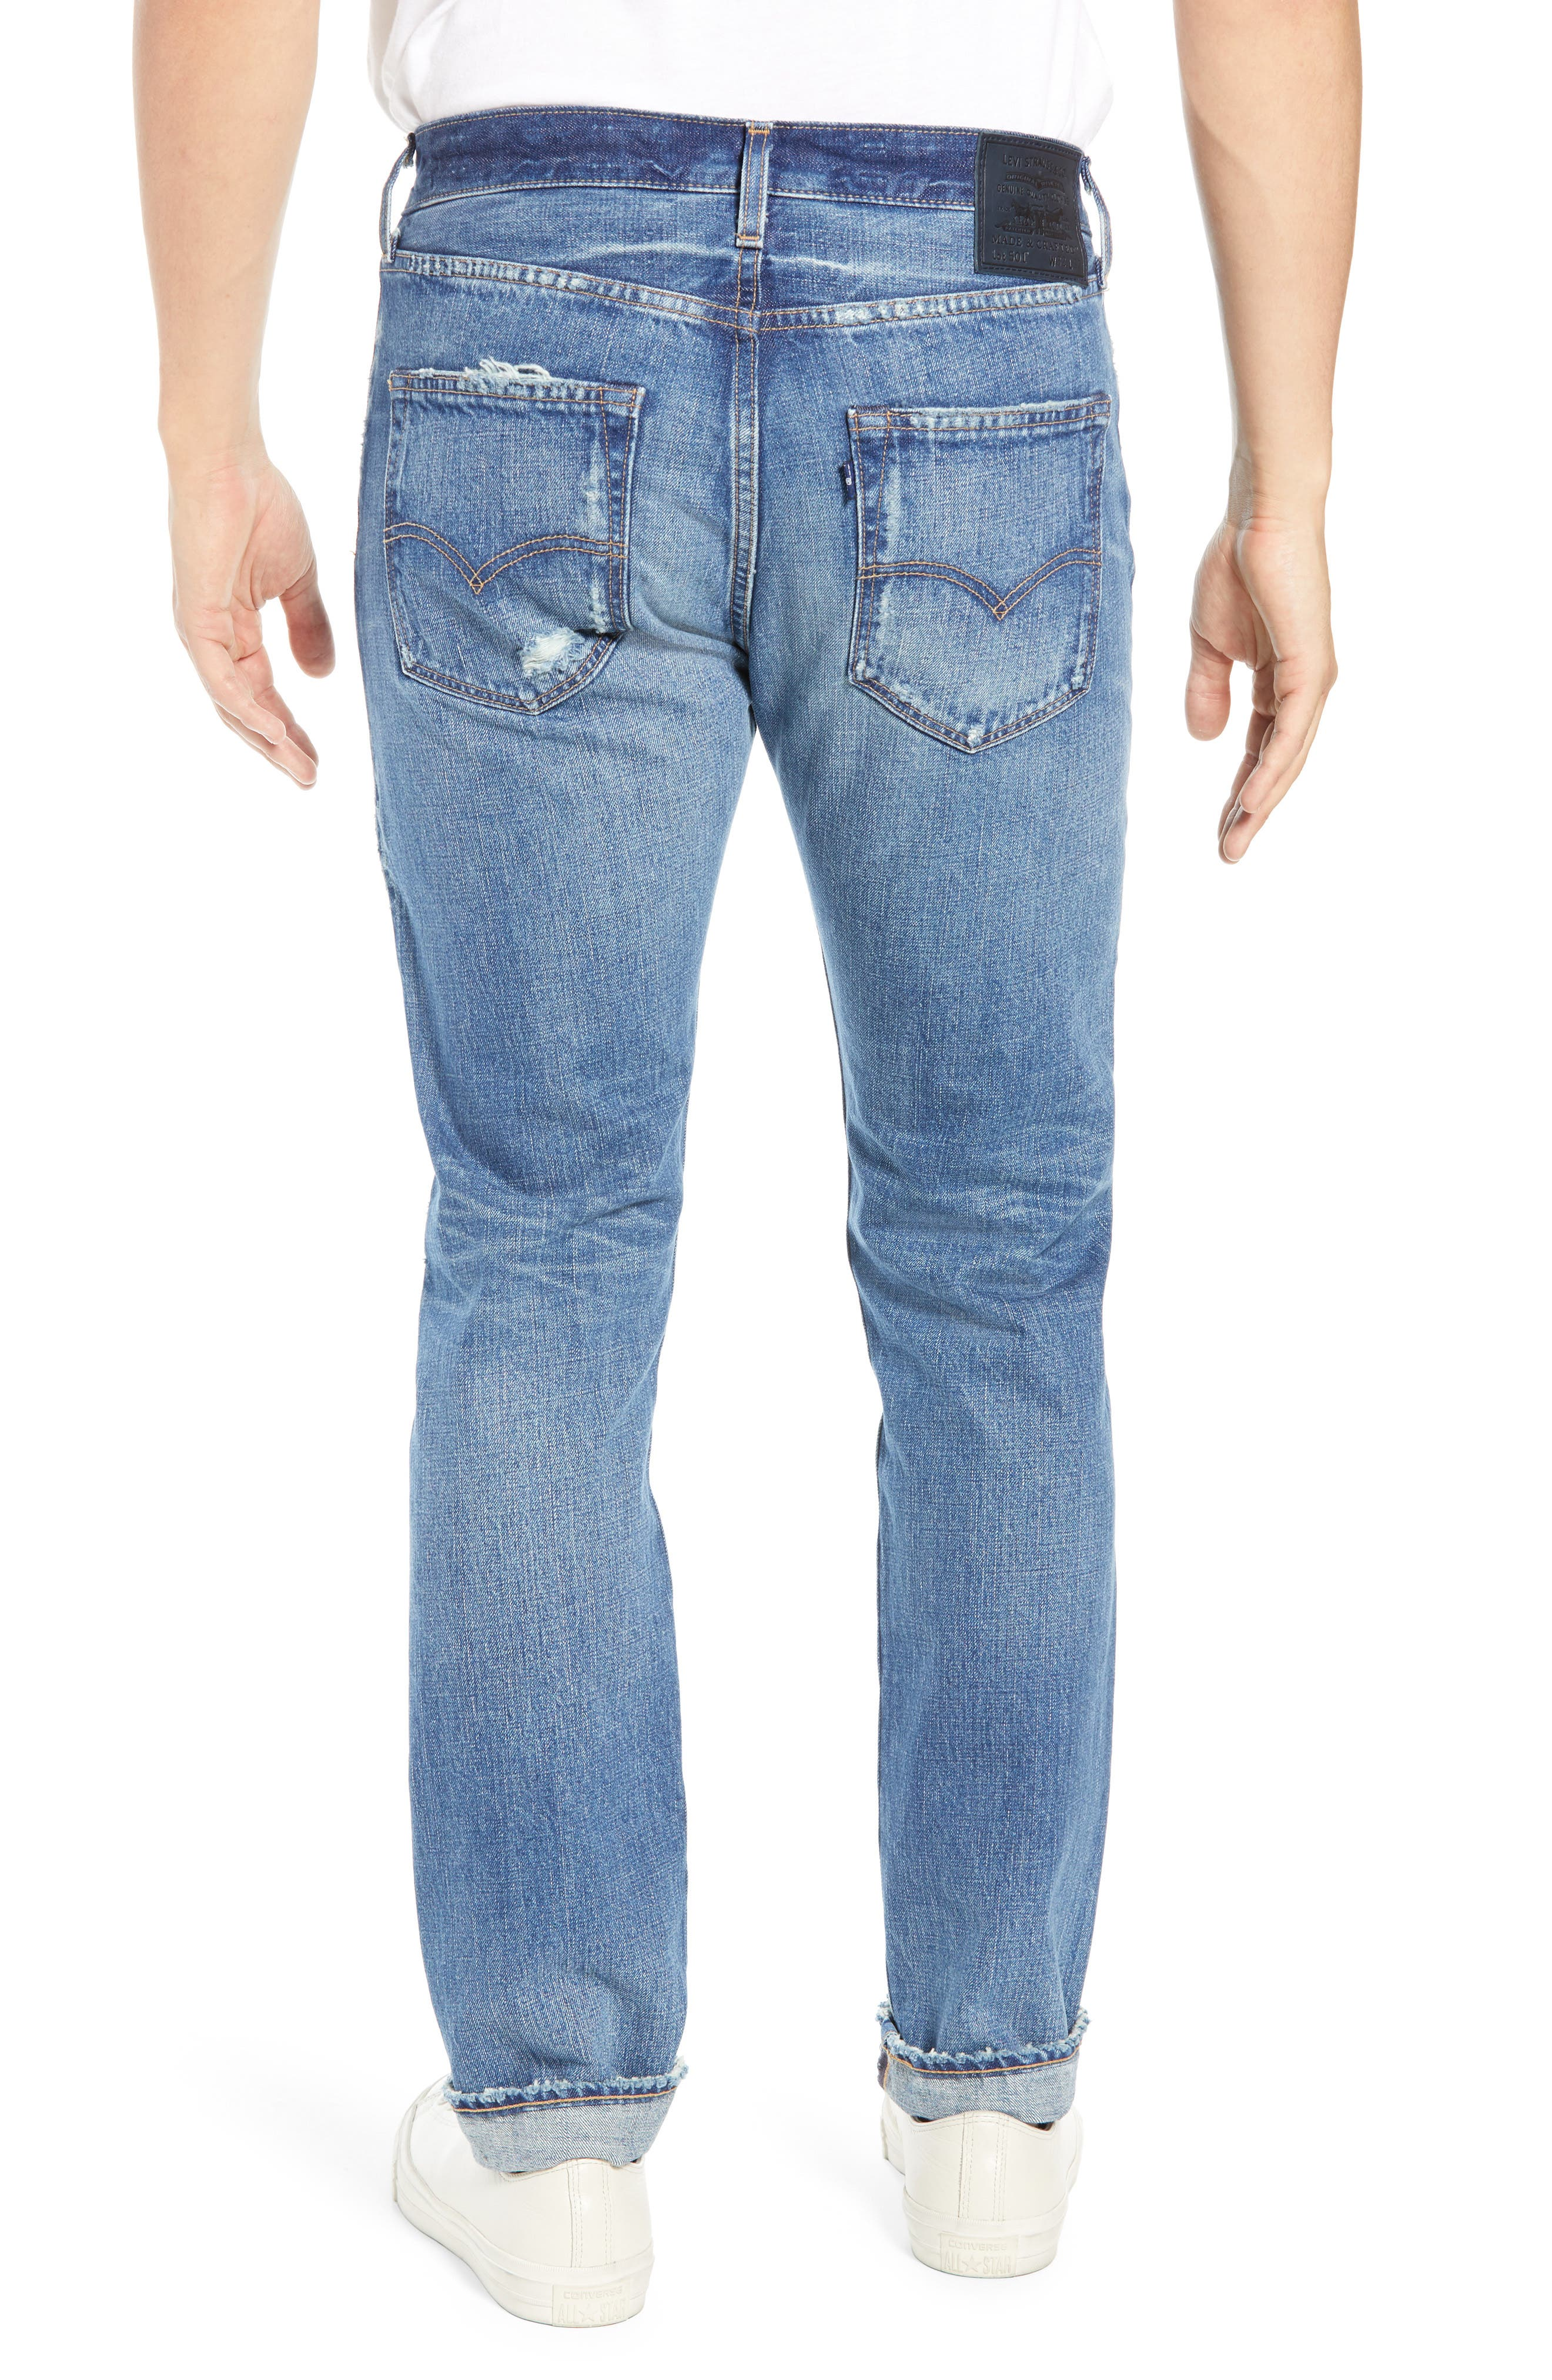 Levi's<sup>®</sup> Made & Crafted 501<sup>™</sup> Slim Fit Tapered Jeans,                             Alternate thumbnail 2, color,                             FOREVER